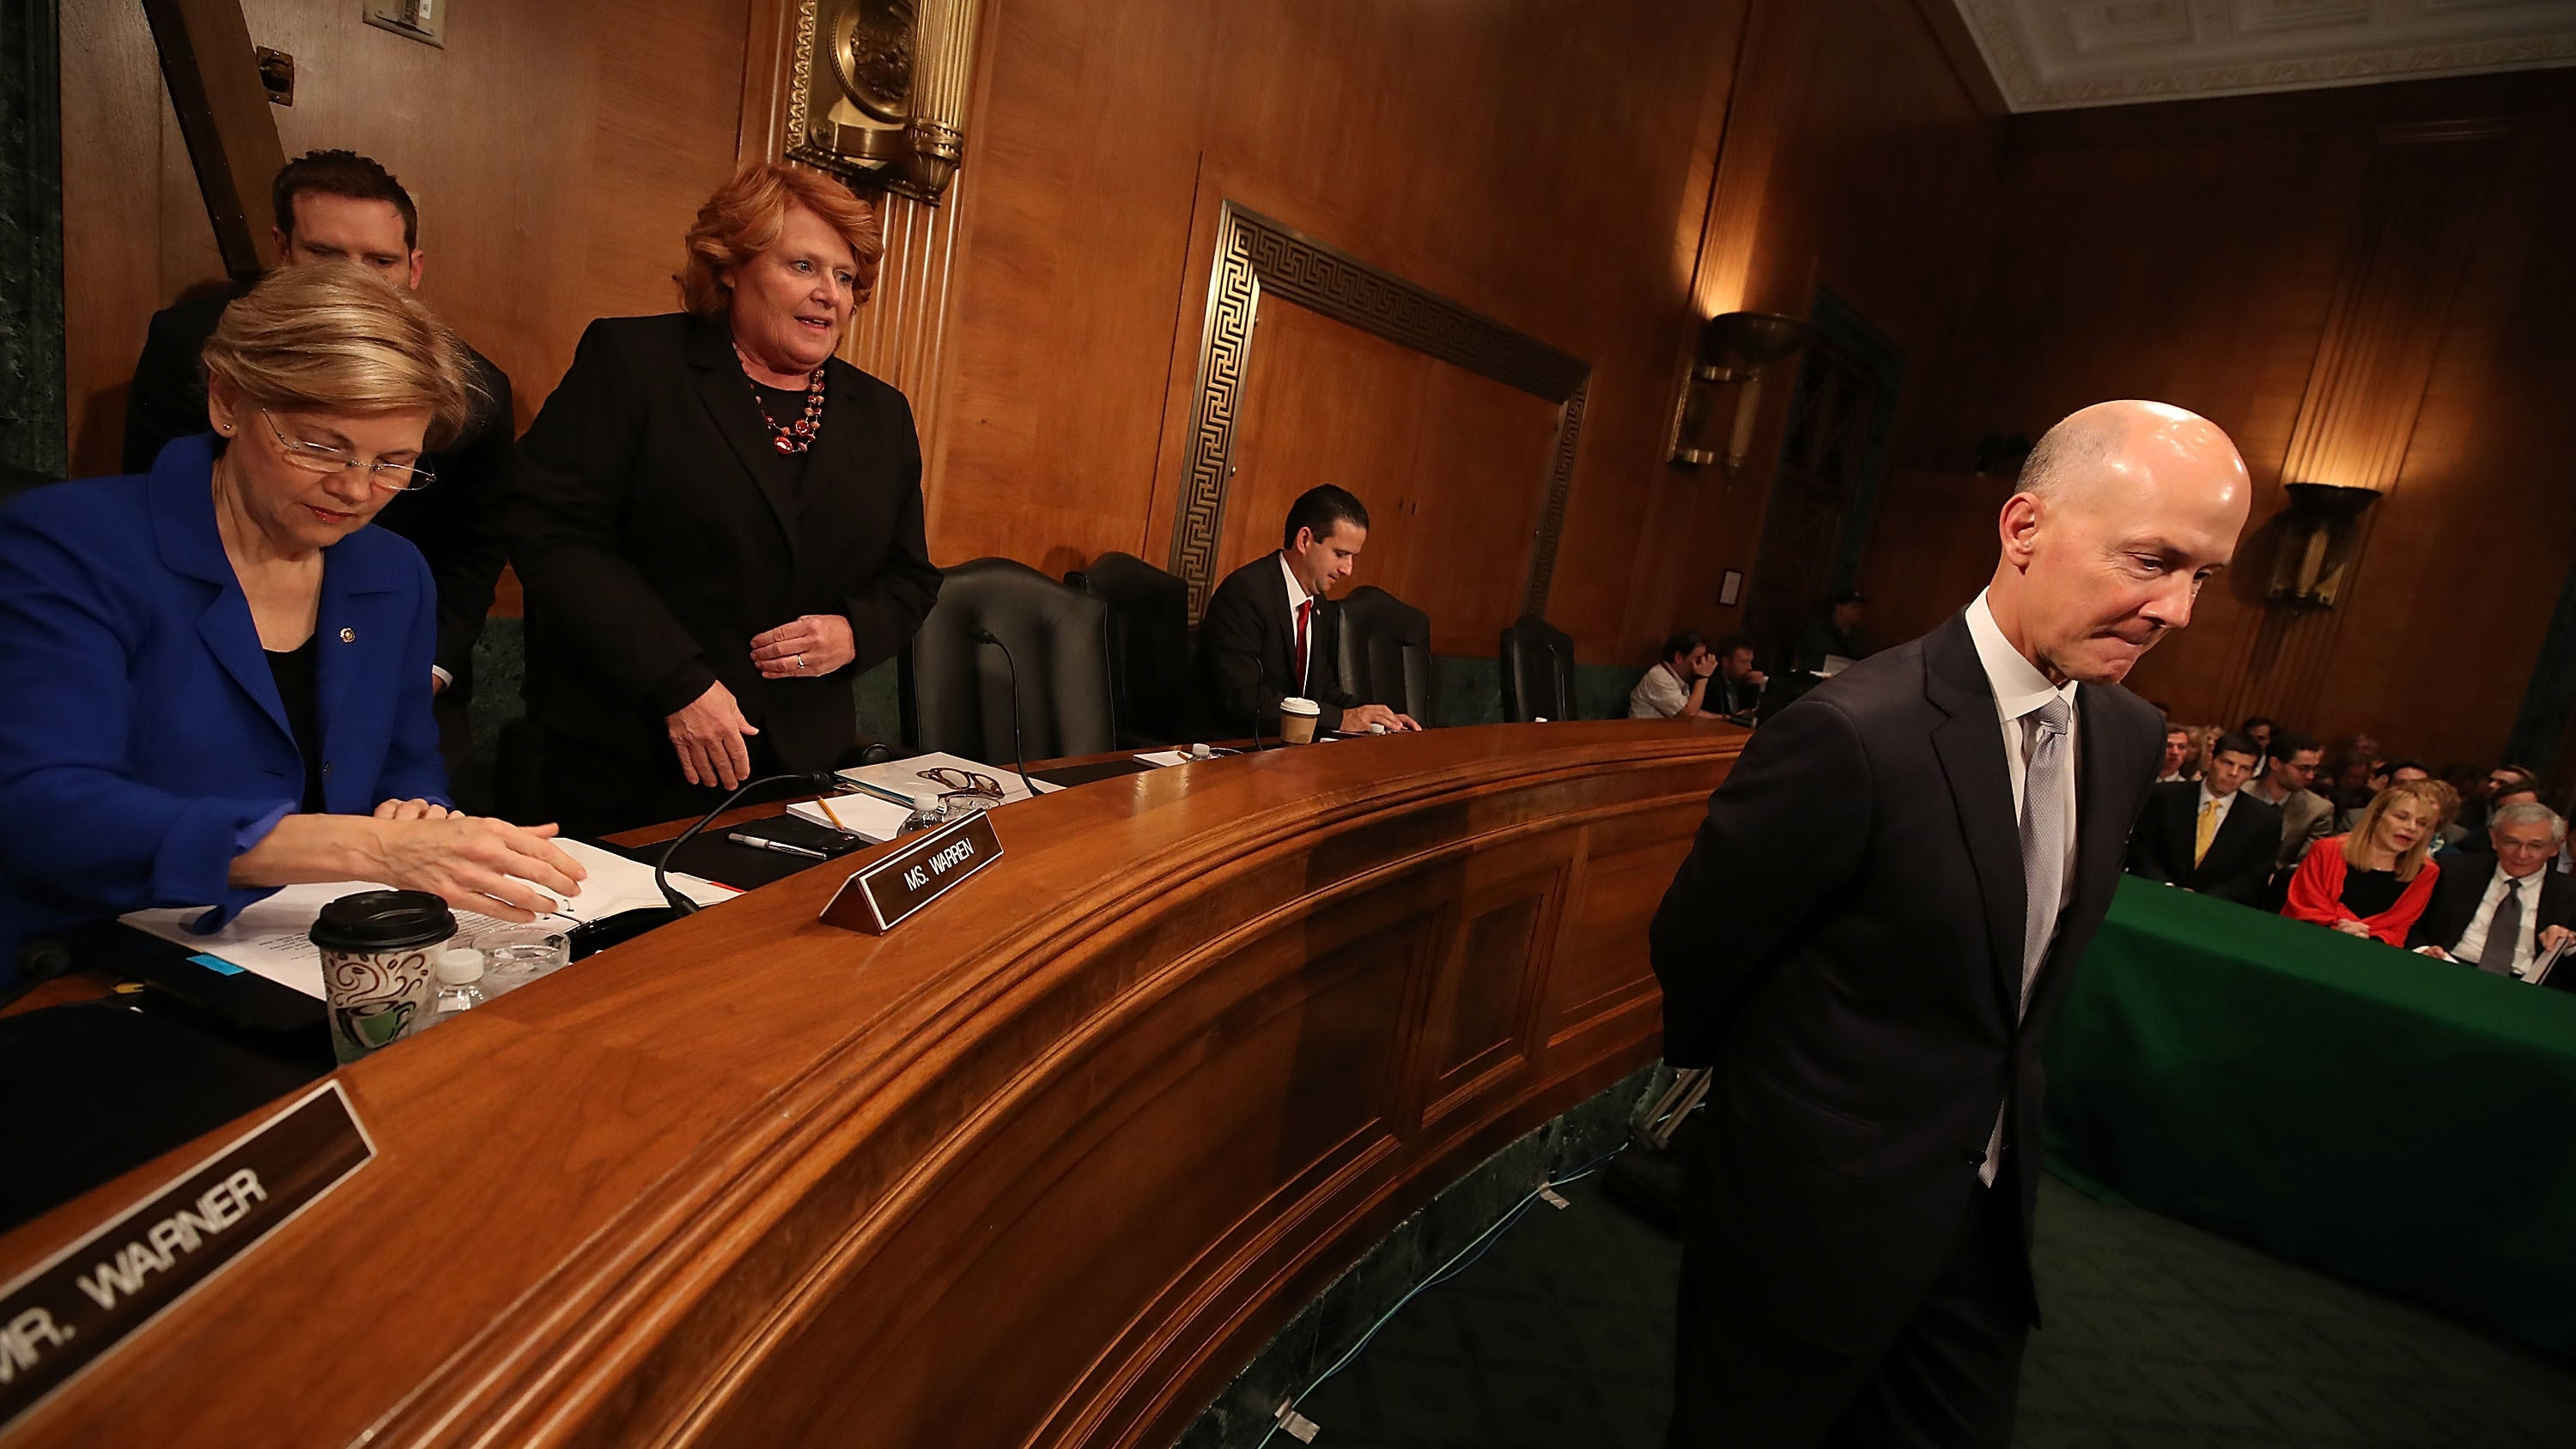 Post-Equifax, Failure Of US Lawmakers To Protect Data-Breach Victims Is Glaring